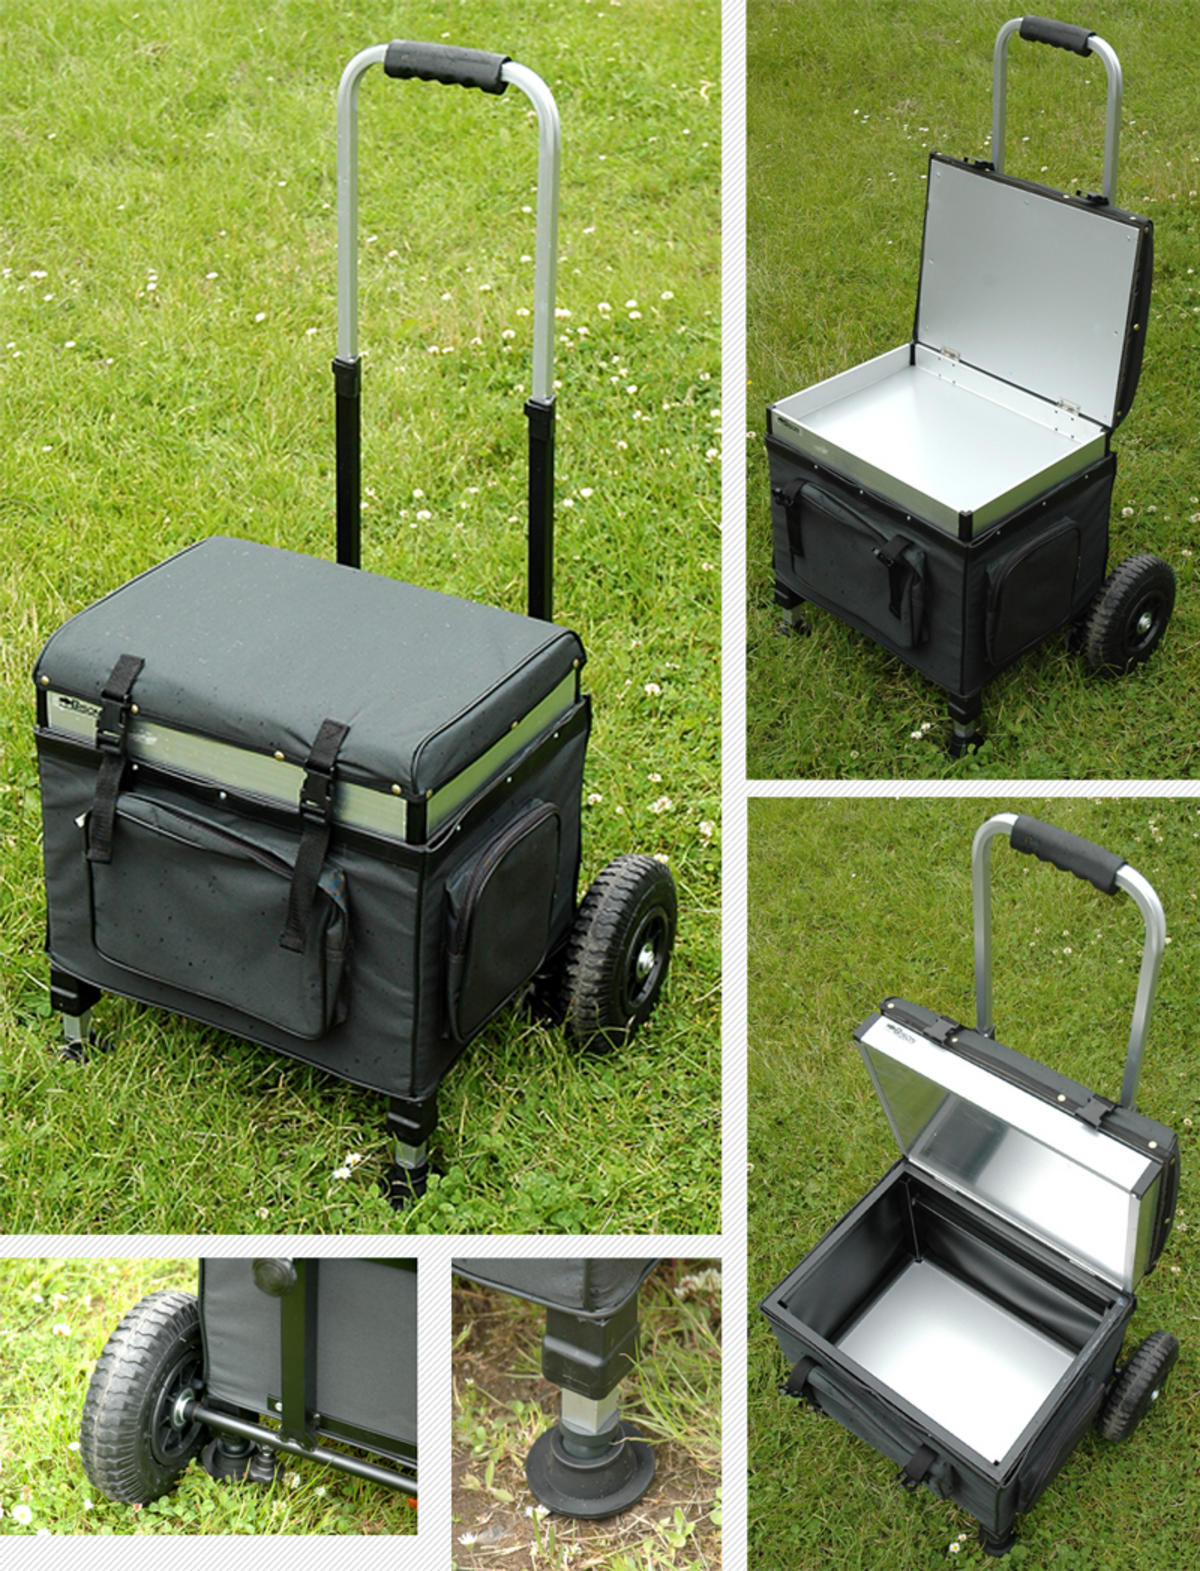 DOG CAT PET HORSE EQUESTRIAN GROOMING TROLLEY SEAT BOX